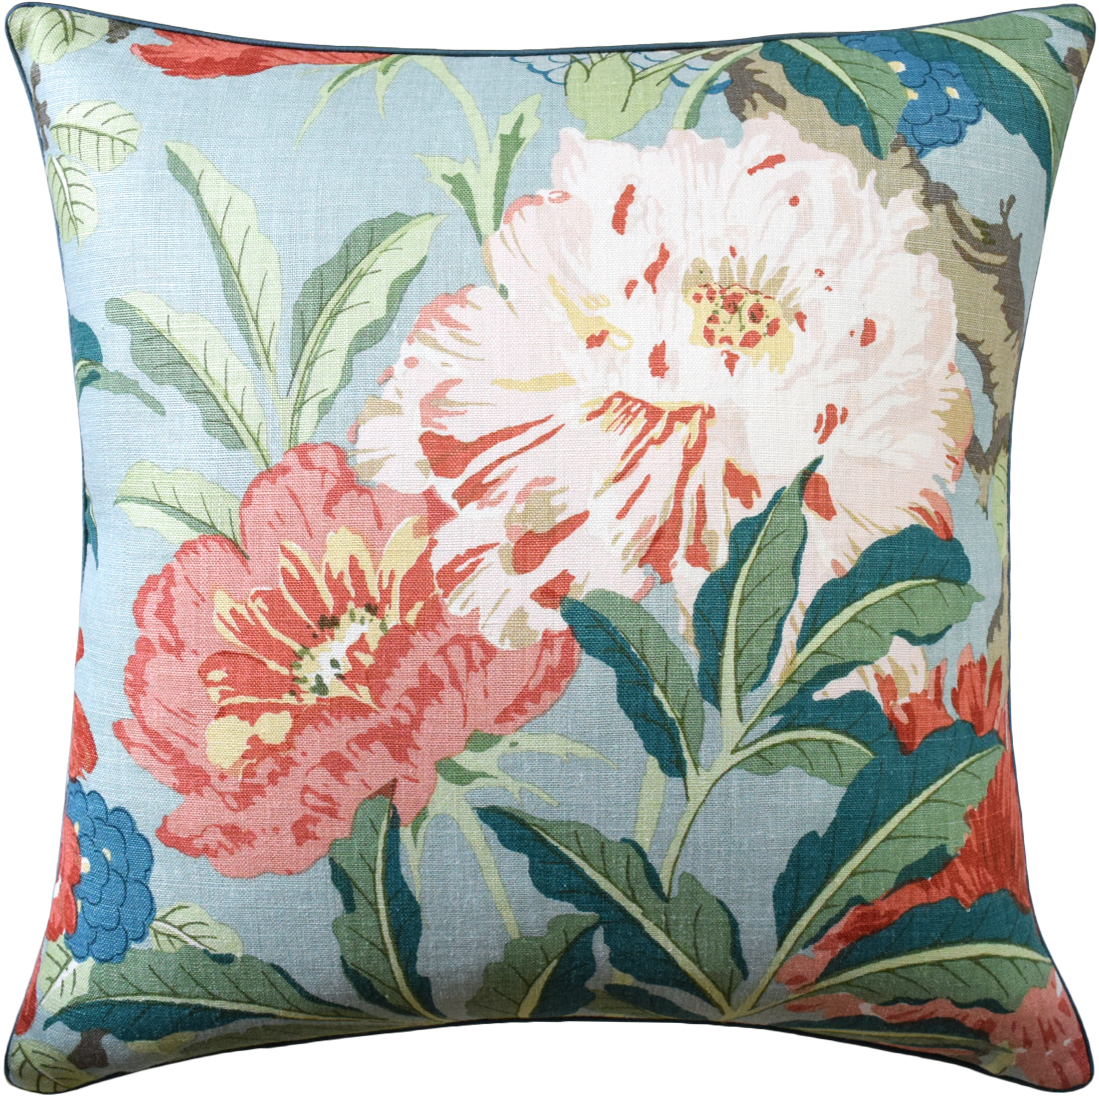 Enchanted Garden Aqua Pillow